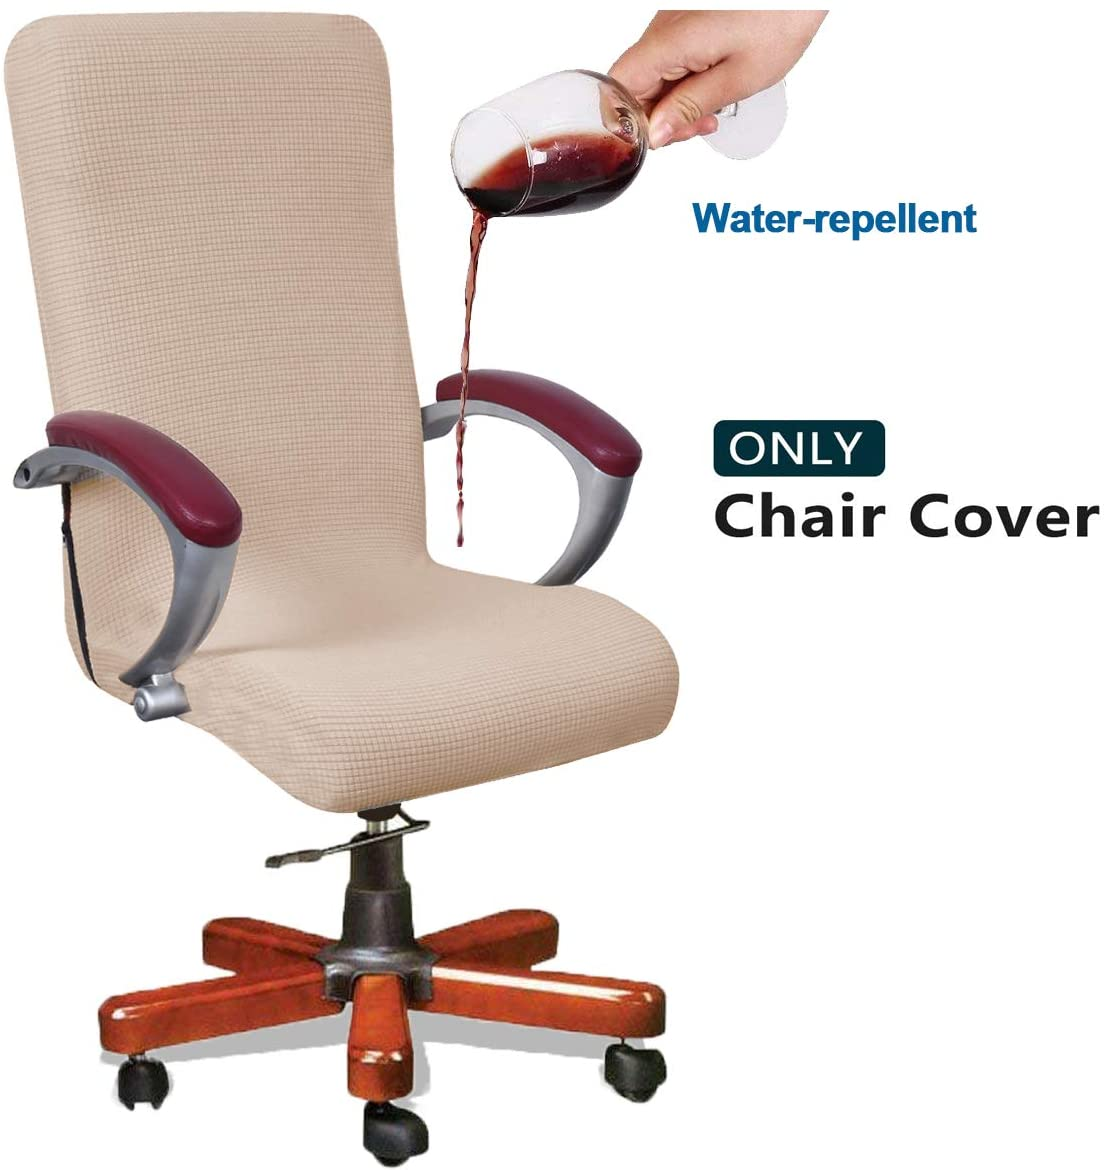 WOMACO Stretch Desk Chair Cover Large Office Chair Covers Stretchable Cover for Computer Chair (2-Beige, Large)